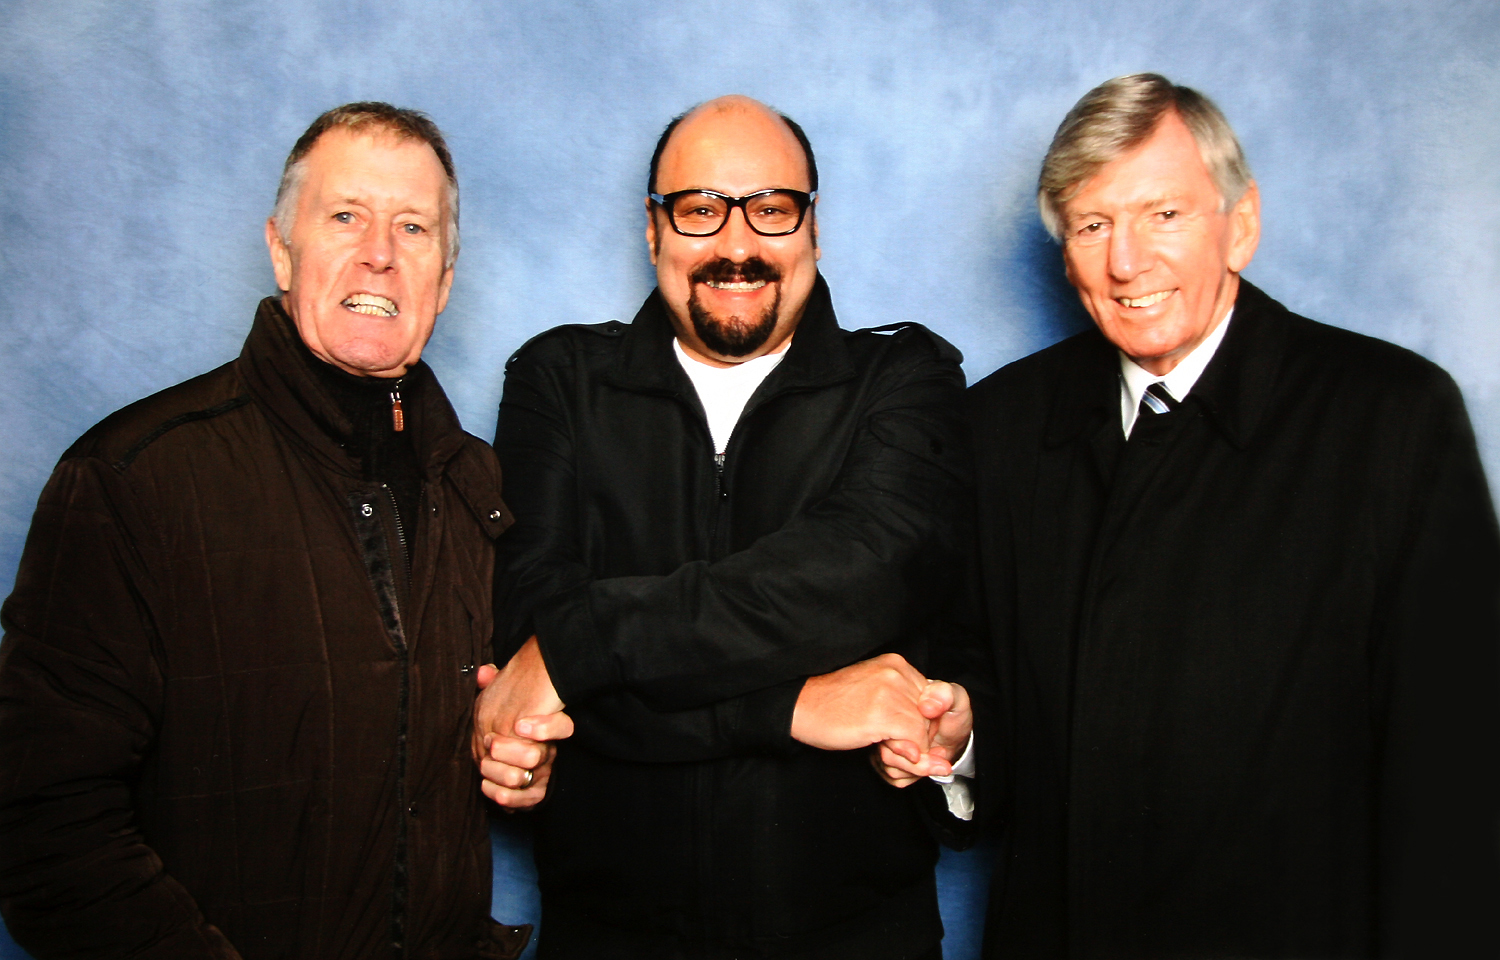 Sir Geoff Hurst & Martin Peters with Dave Sherwood